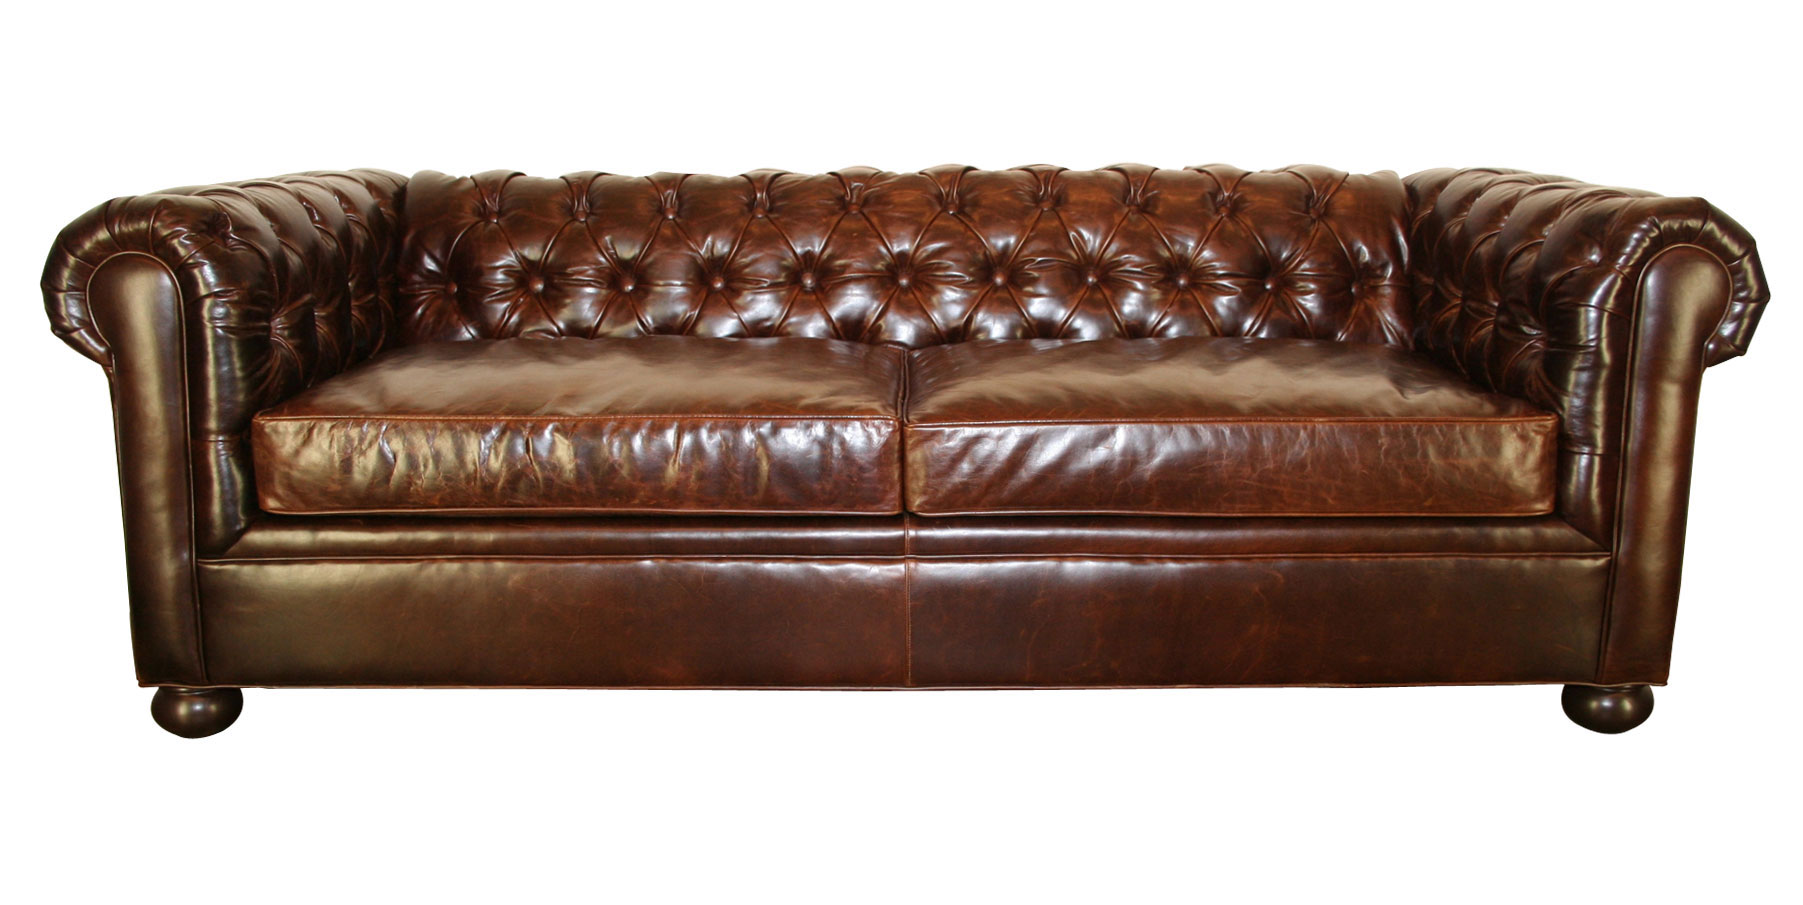 Tufted leather chesterfield living room furniture club for Tufted leather sleeper sofa